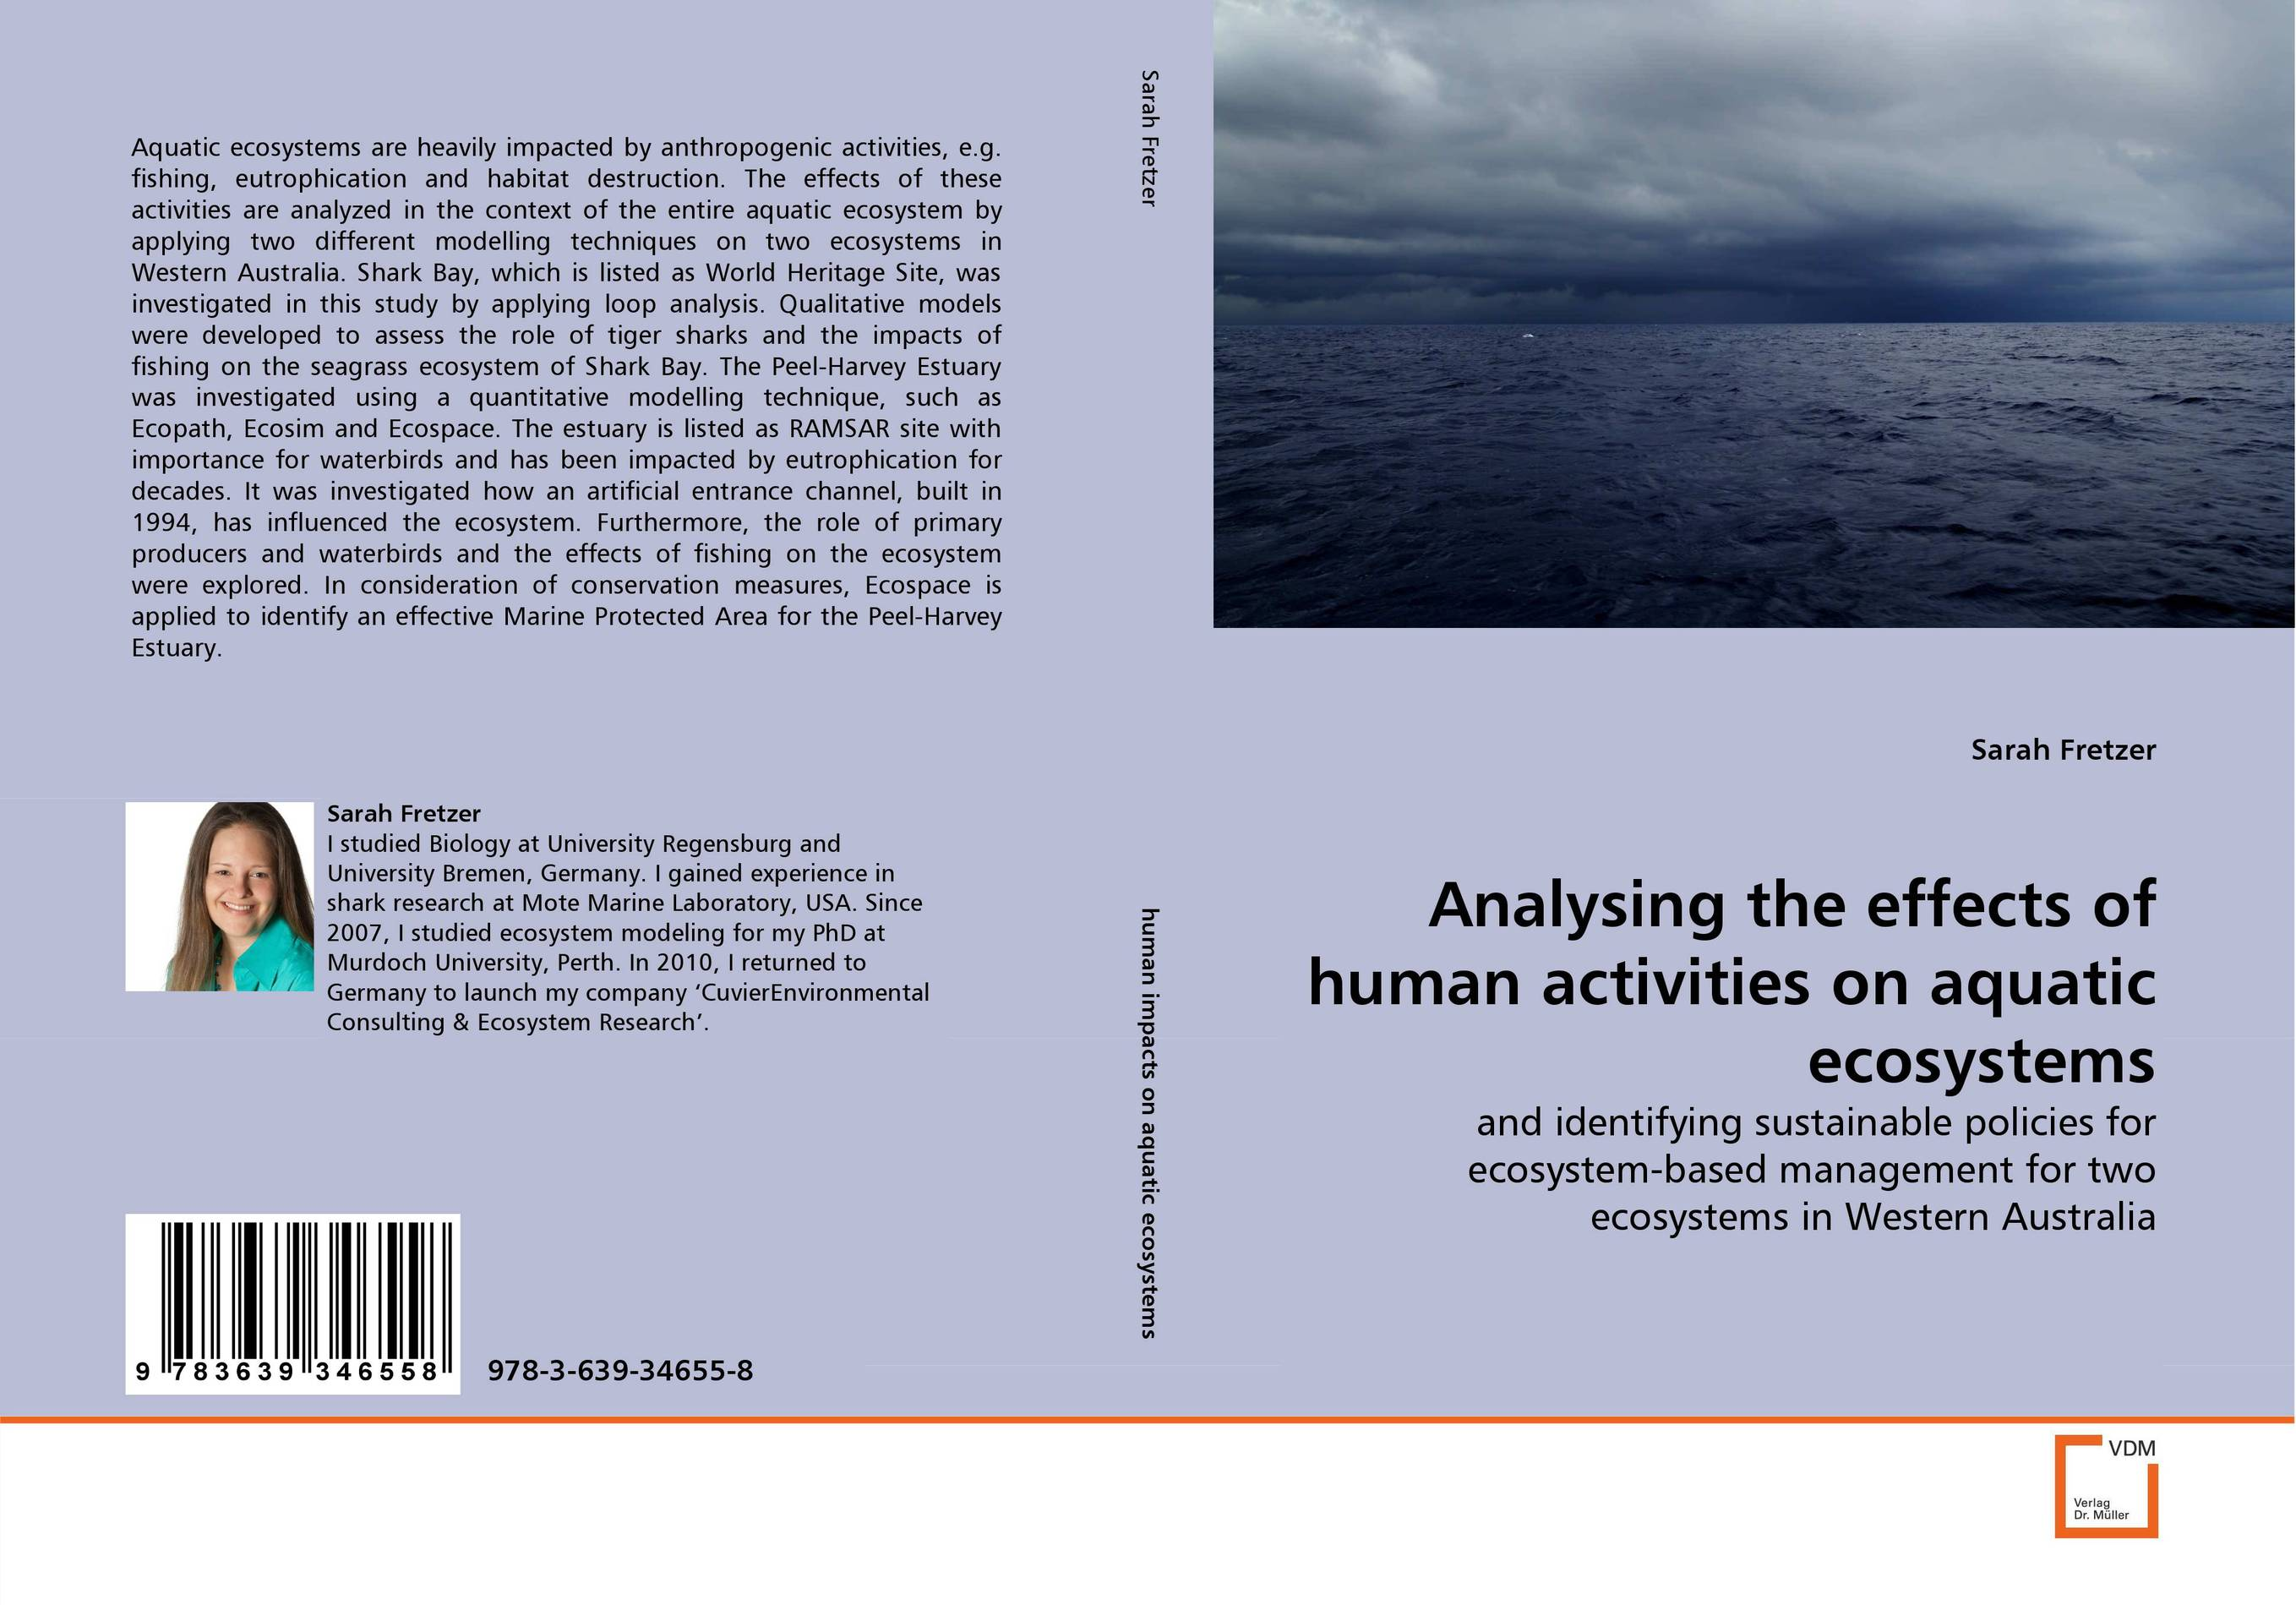 Analysing the effects of human activities on aquatic ecosystems